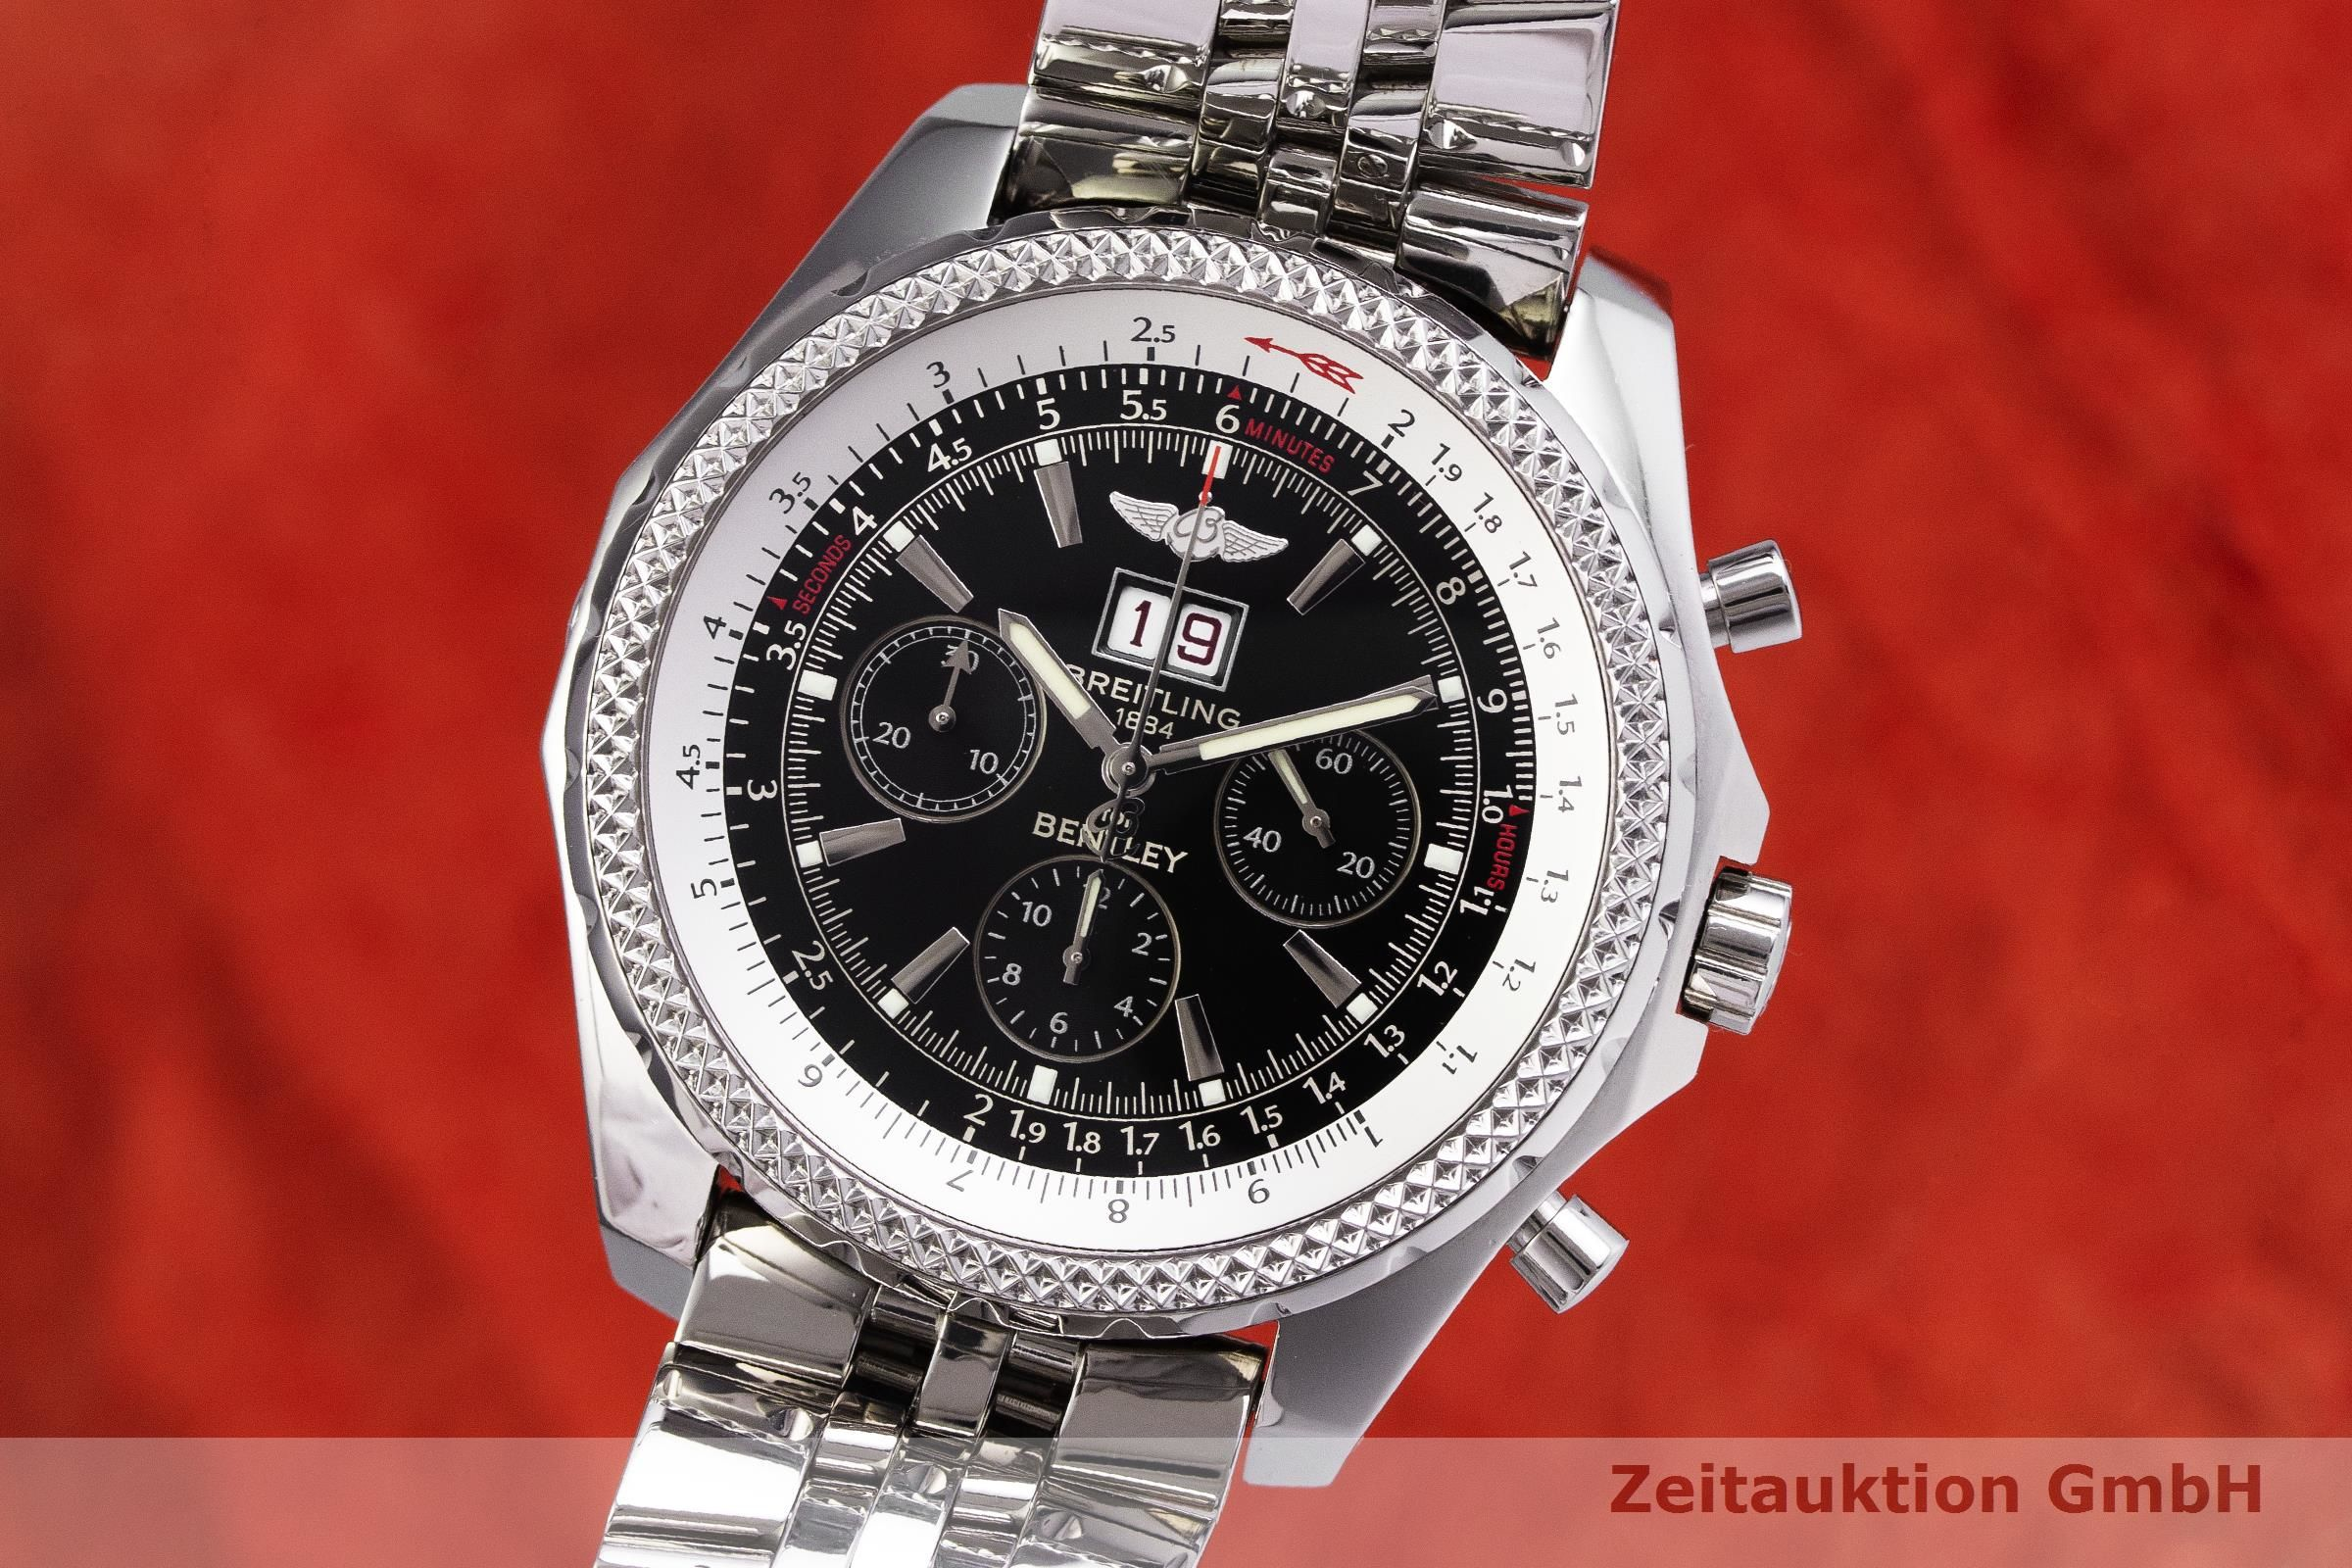 Breitling Bentley 6 75 Chronograph Steel Automatic Kal B44 Eta 2892 A2 Ref A44362 2000031 Zeitauktion